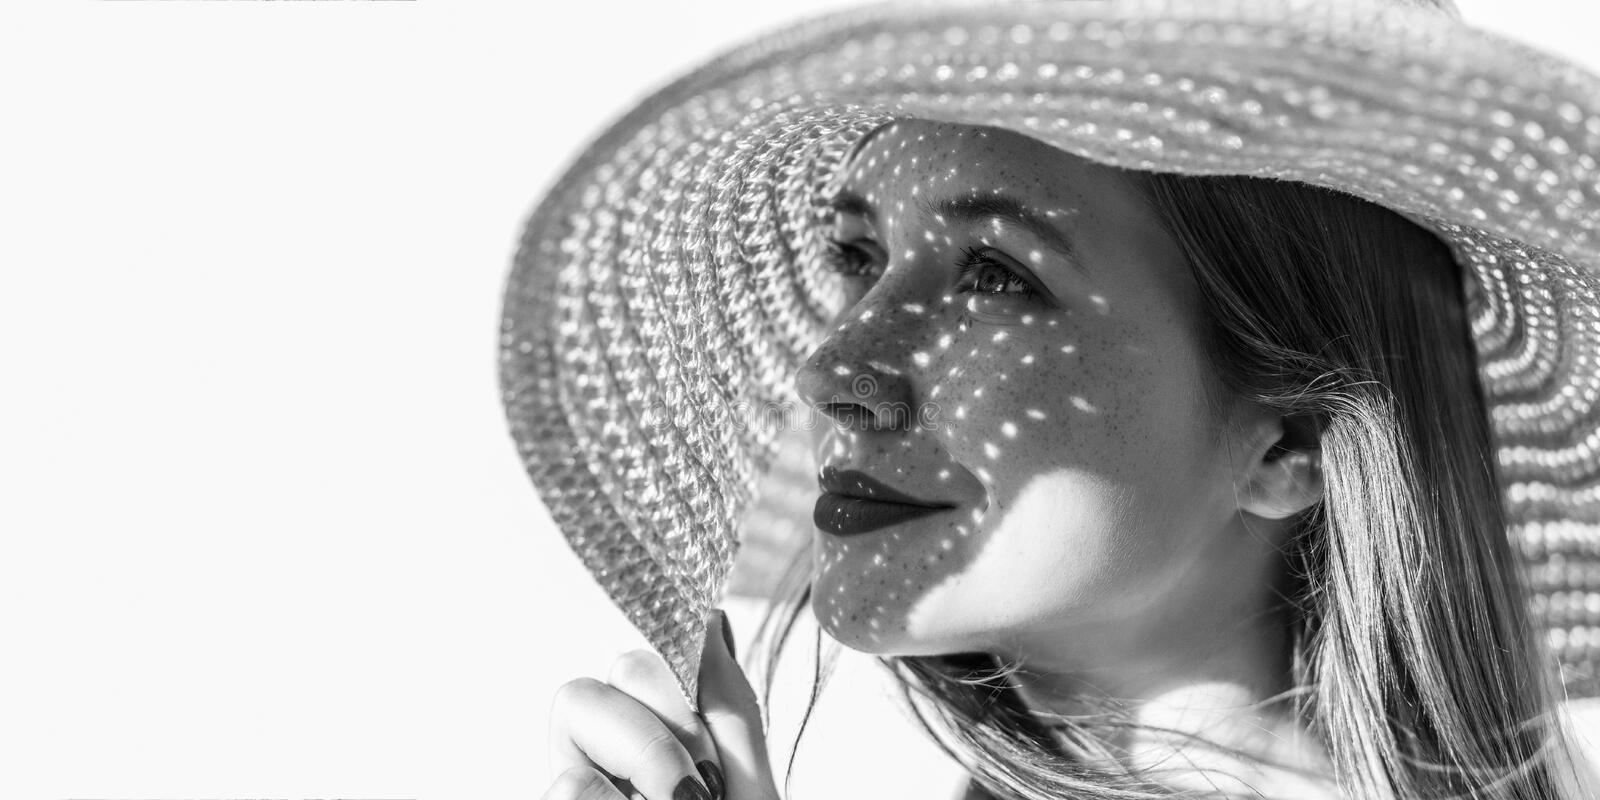 Profile side view portrait of happy dreamy beautiful young woman with hat looking away and smiling, holding hat, light through hat royalty free stock images